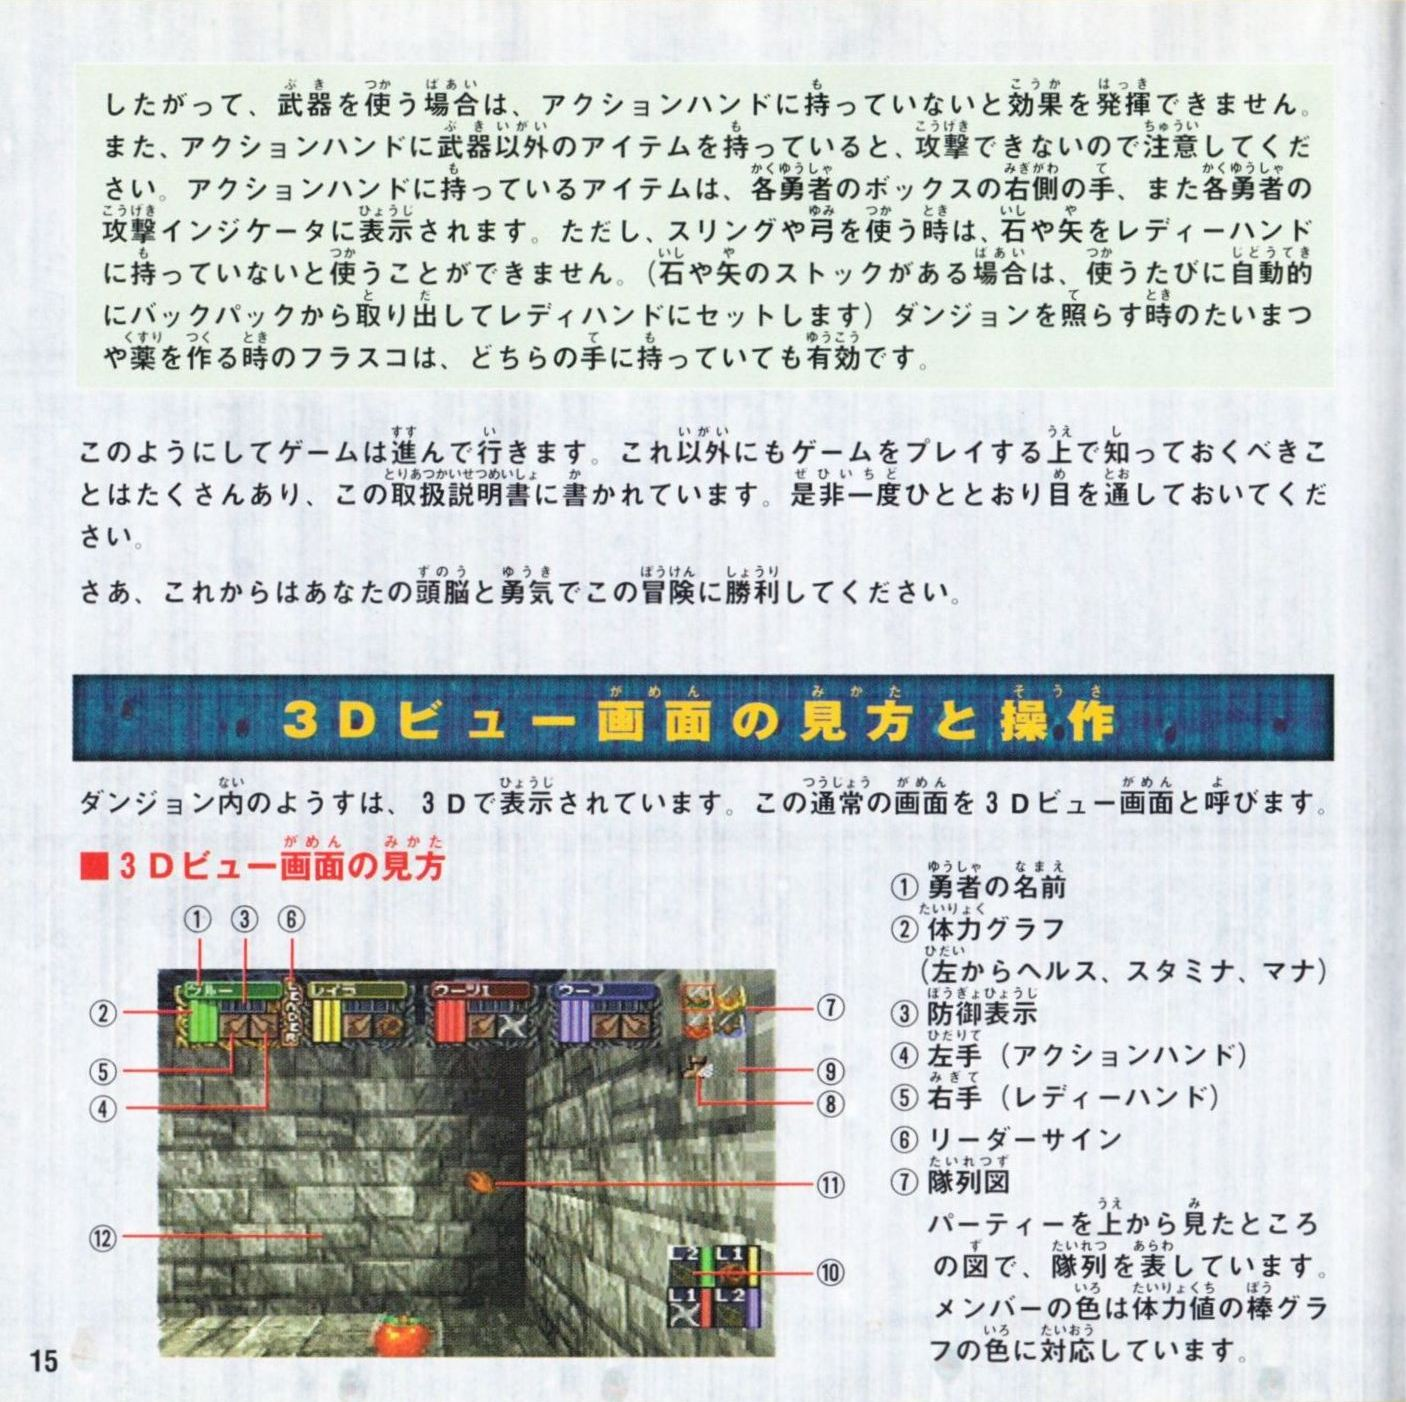 Game - Dungeon Master Nexus - JP - Sega Saturn - Booklet - Page 016 - Scan